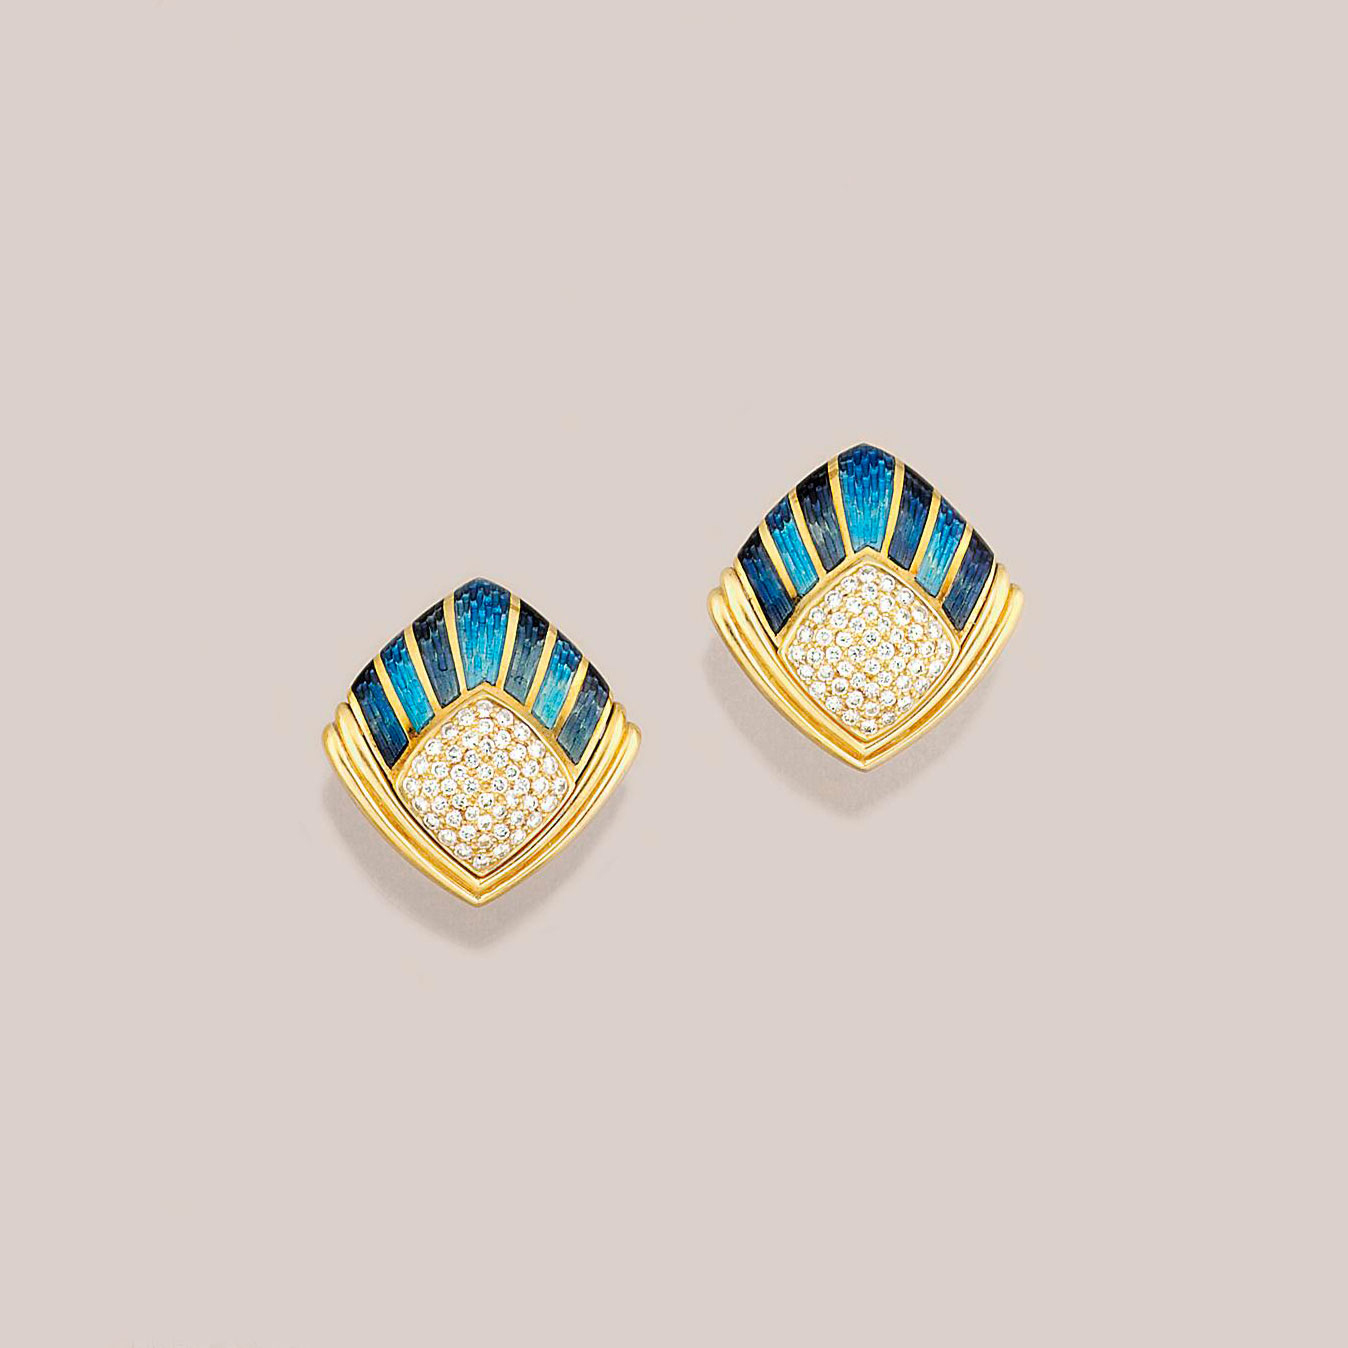 A pair of 18ct. gold, diamond and enamel earrings, by de Vroomen